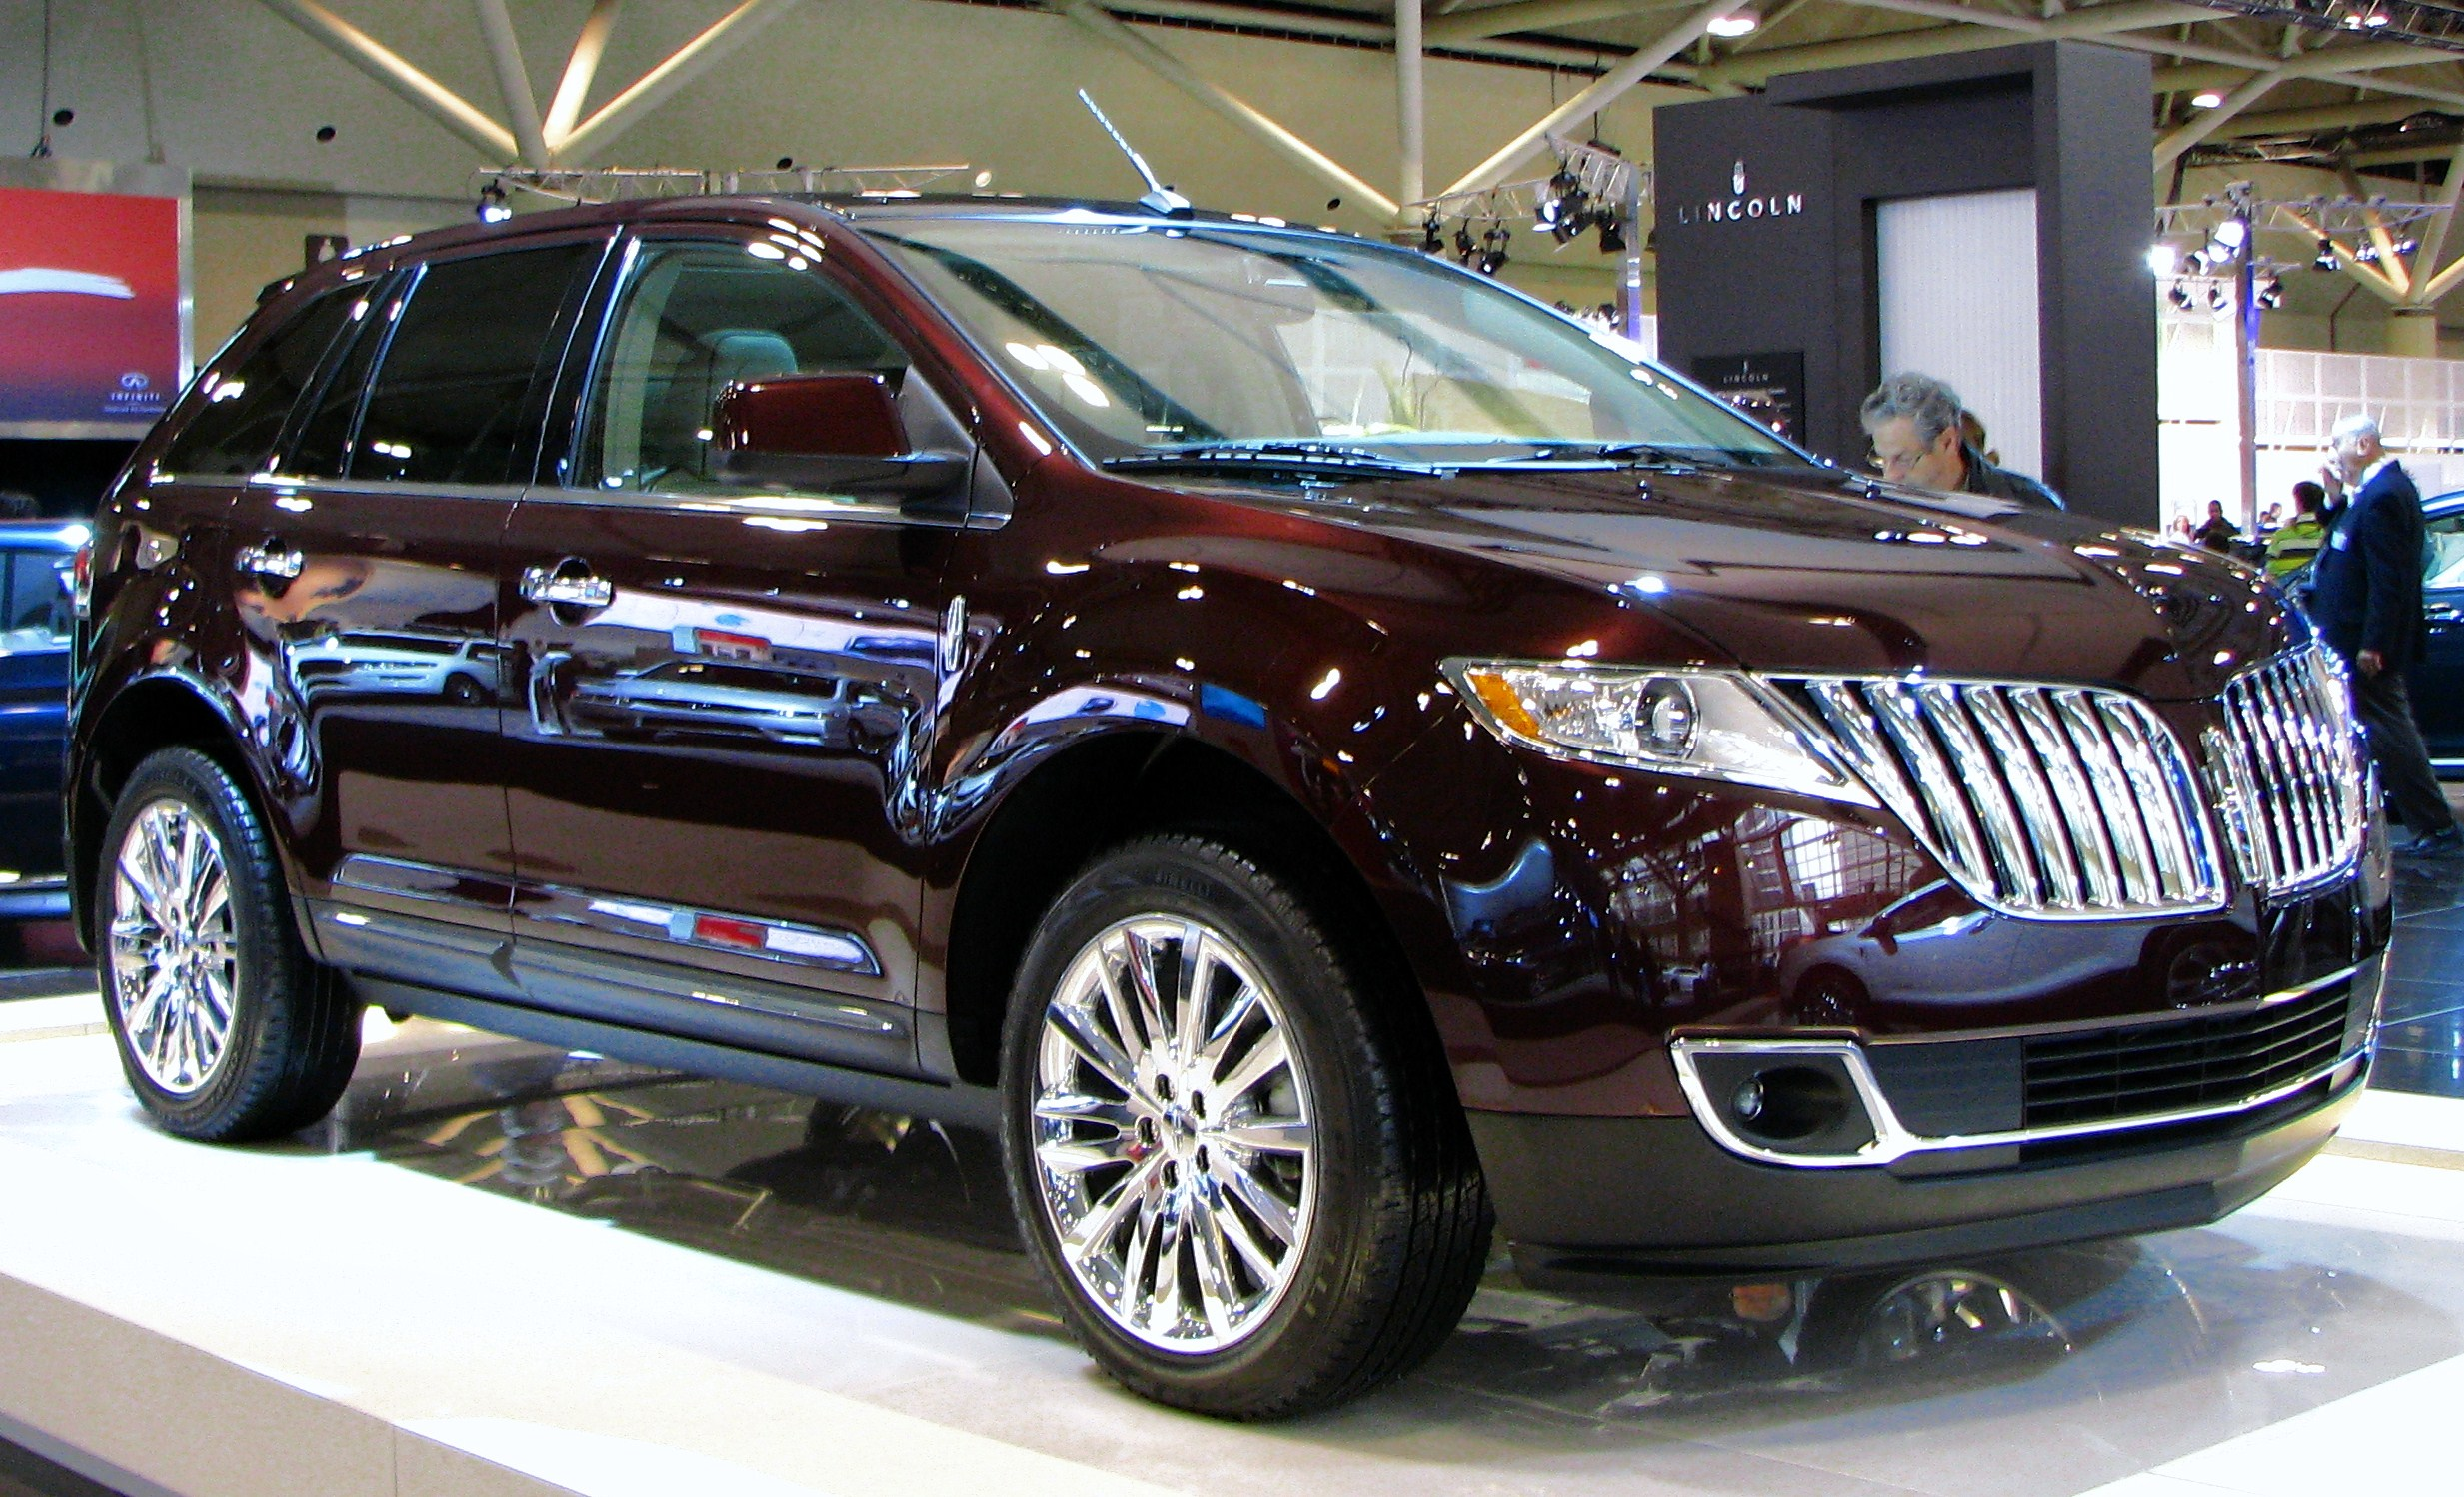 Lincoln Mkx 2011 >> File:2011 Lincoln MKX.jpg - Wikimedia Commons